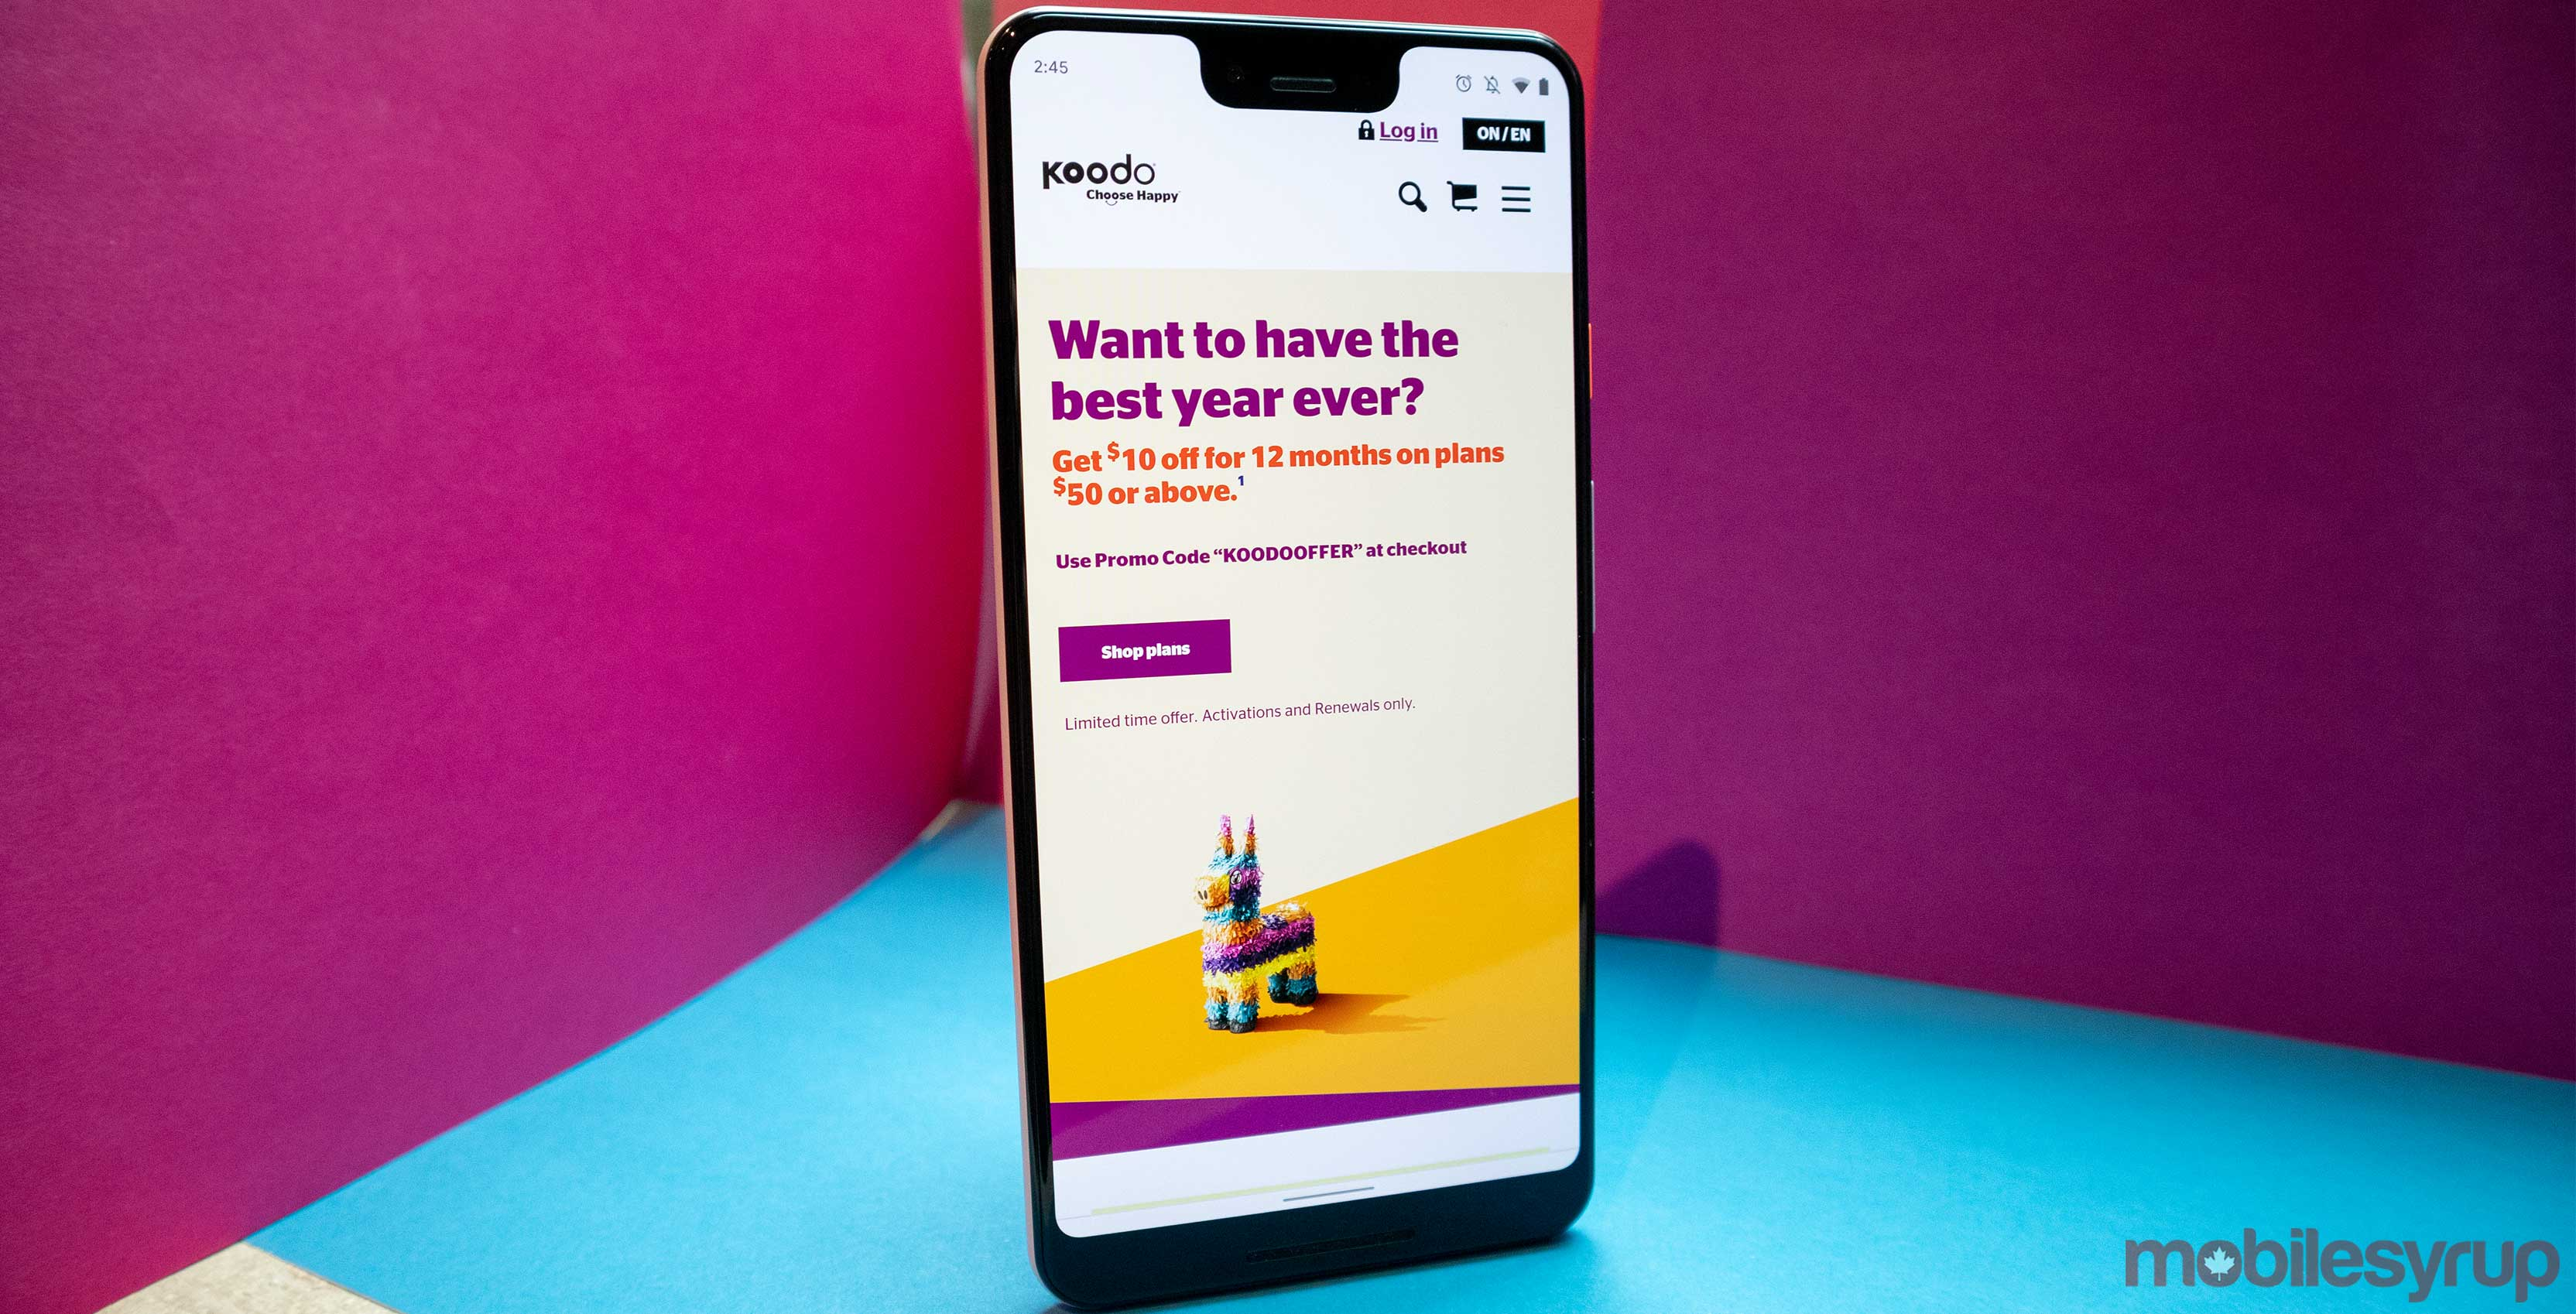 d9e052f11 If you're looking to get a new phone or phone contract, Koodo is offering  $10 CAD off your plan as long as it's over $50 for a year.